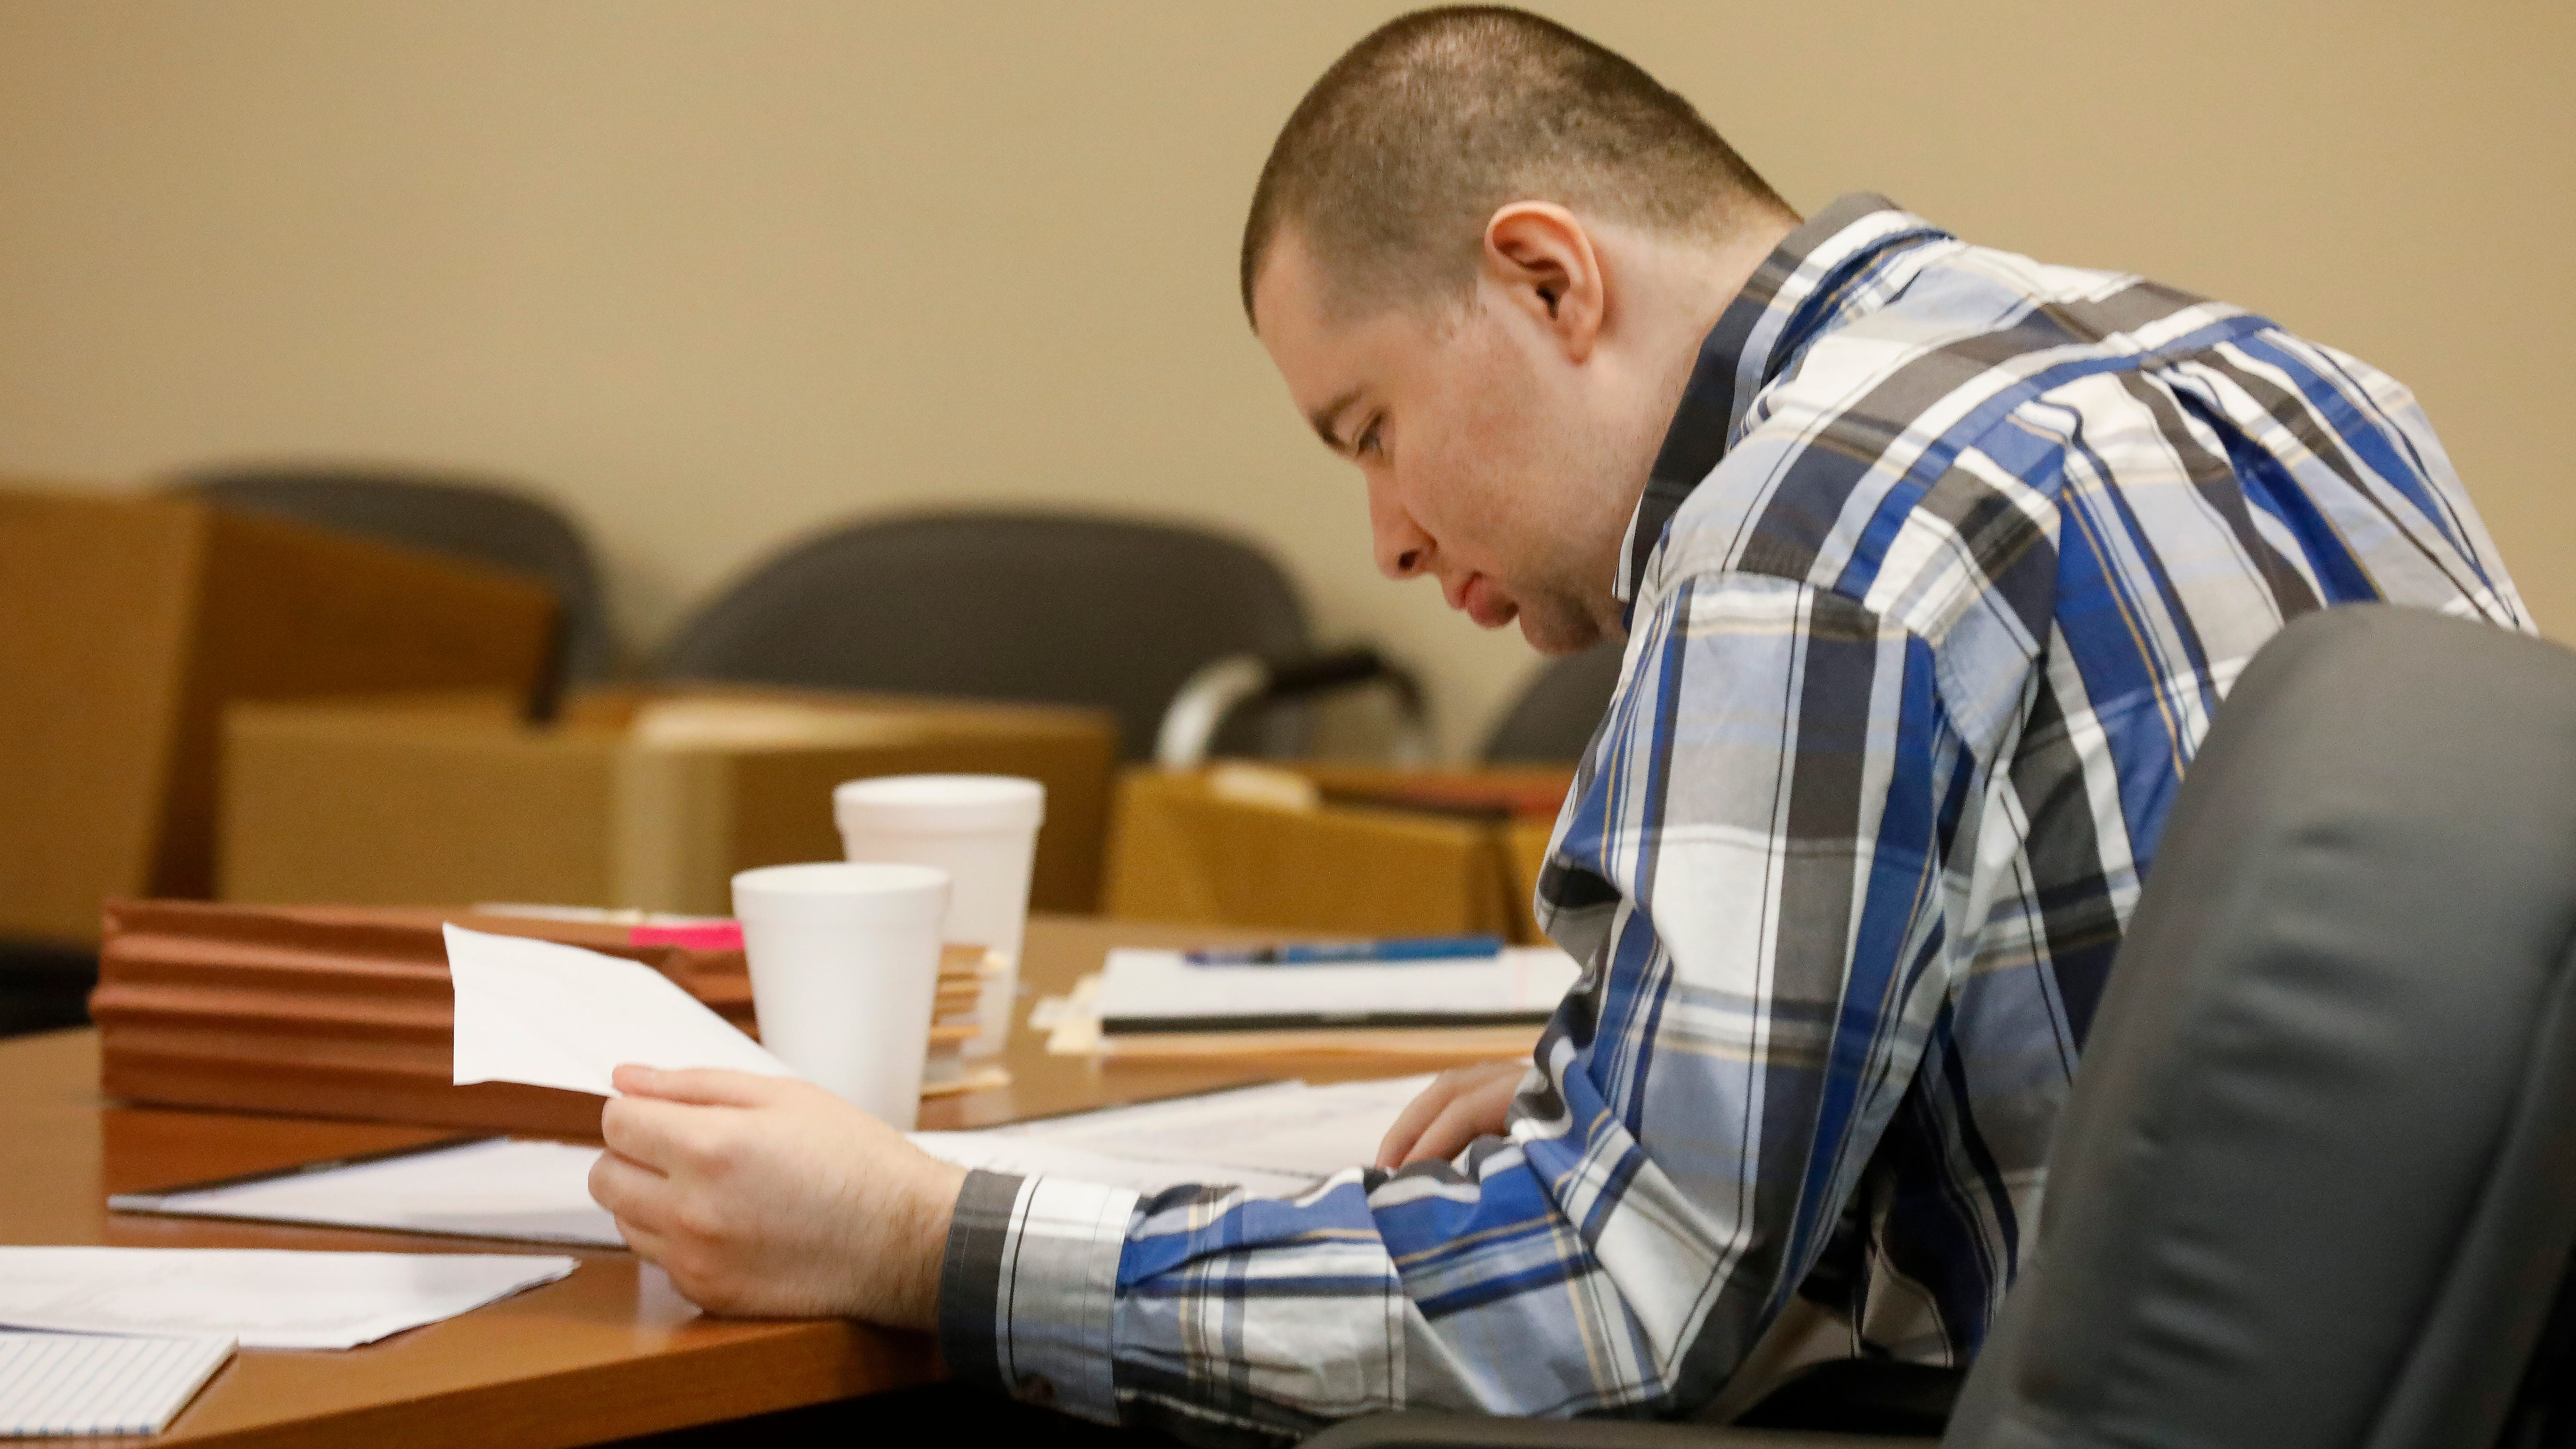 Live updates: Day 4 of the Nicholas Godejohn trial